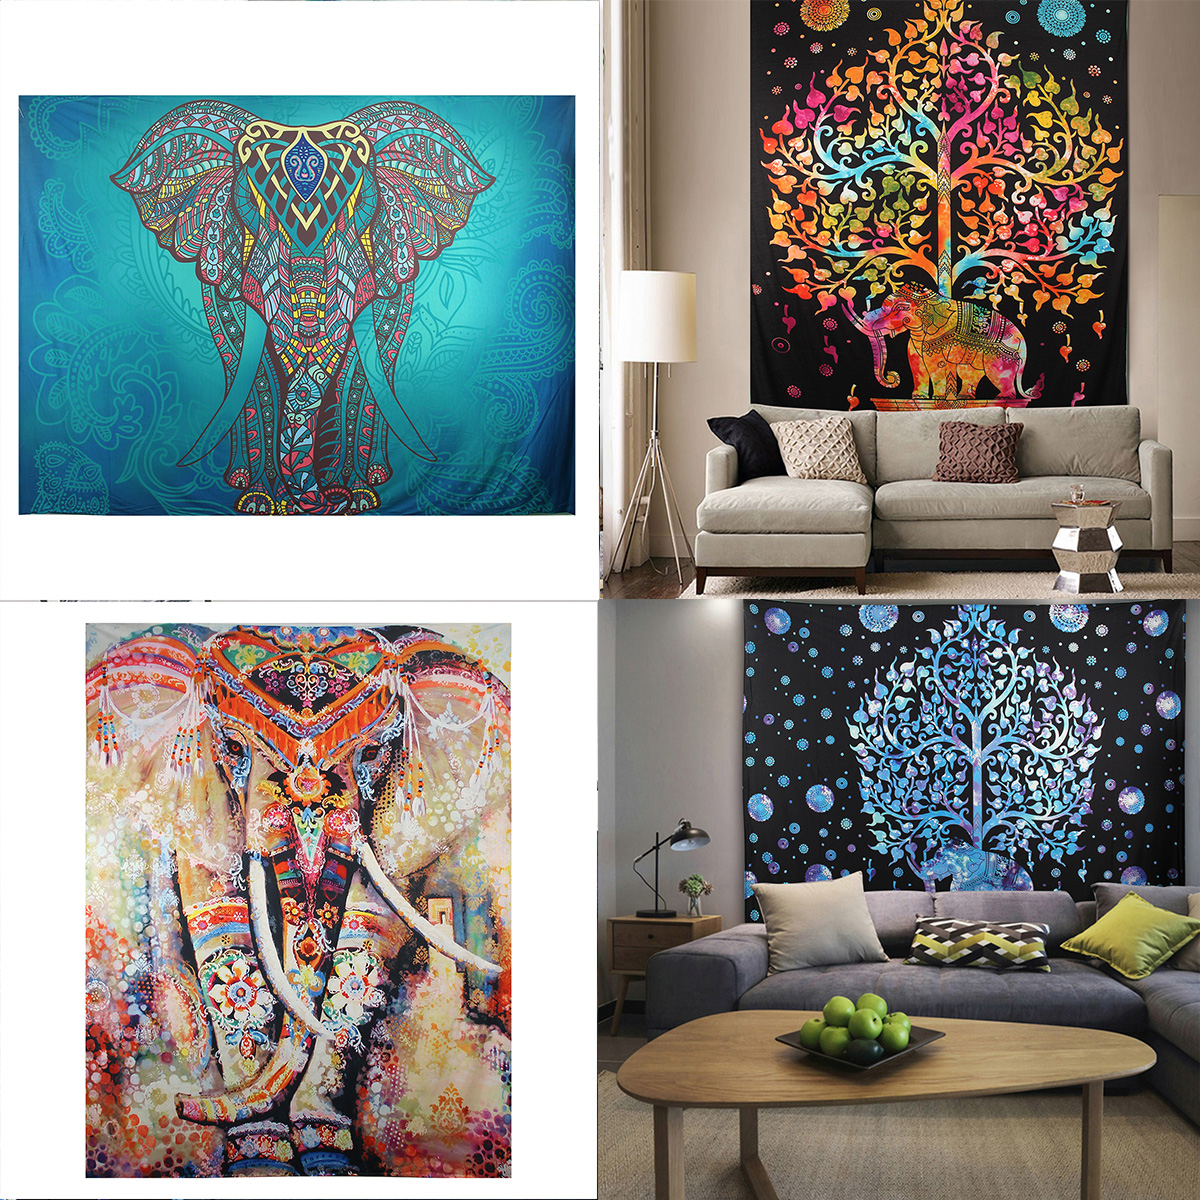 Elephant Mandala Tapestry Throw Towel Hippie Tapestry Floral Printed Home Decor Wall Tapestries Bedspread 210*150CM 3